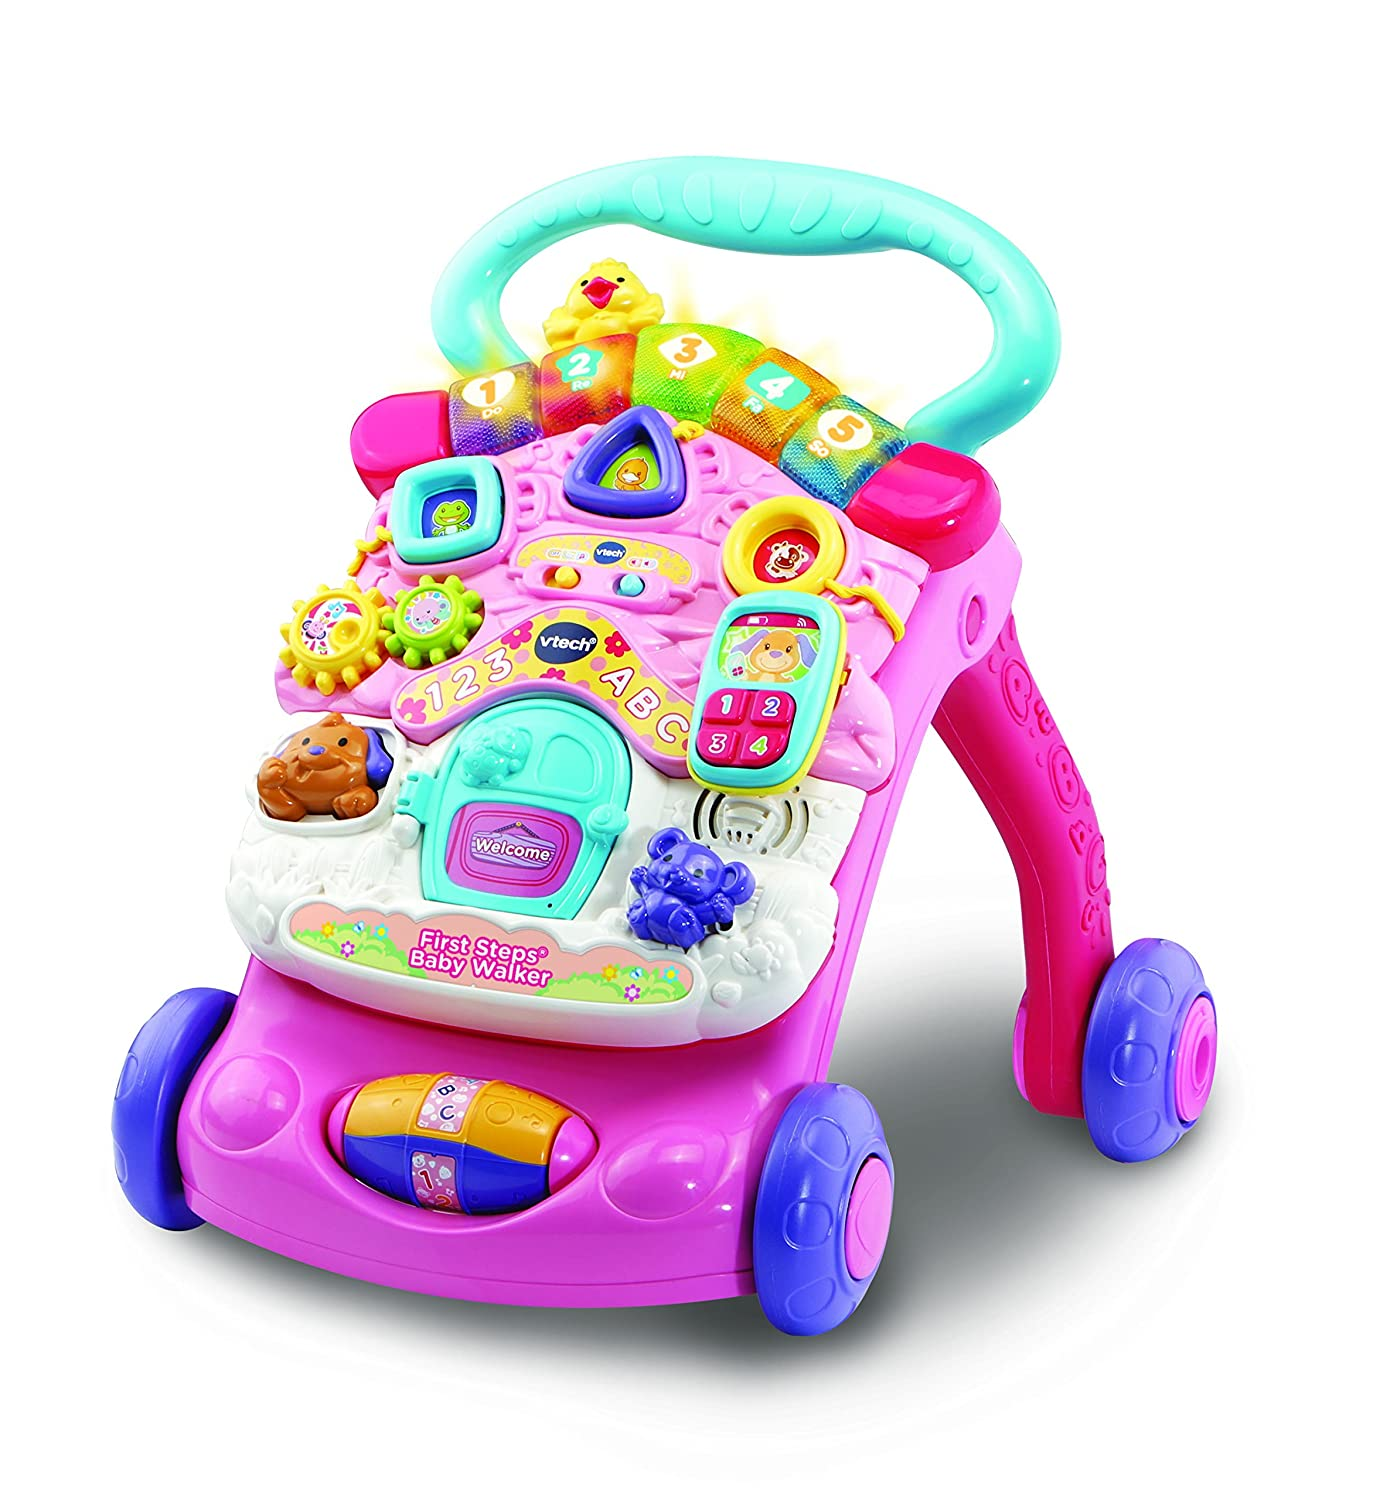 Vtech First Steps Baby Walker Pink Vtech Electronics 505653